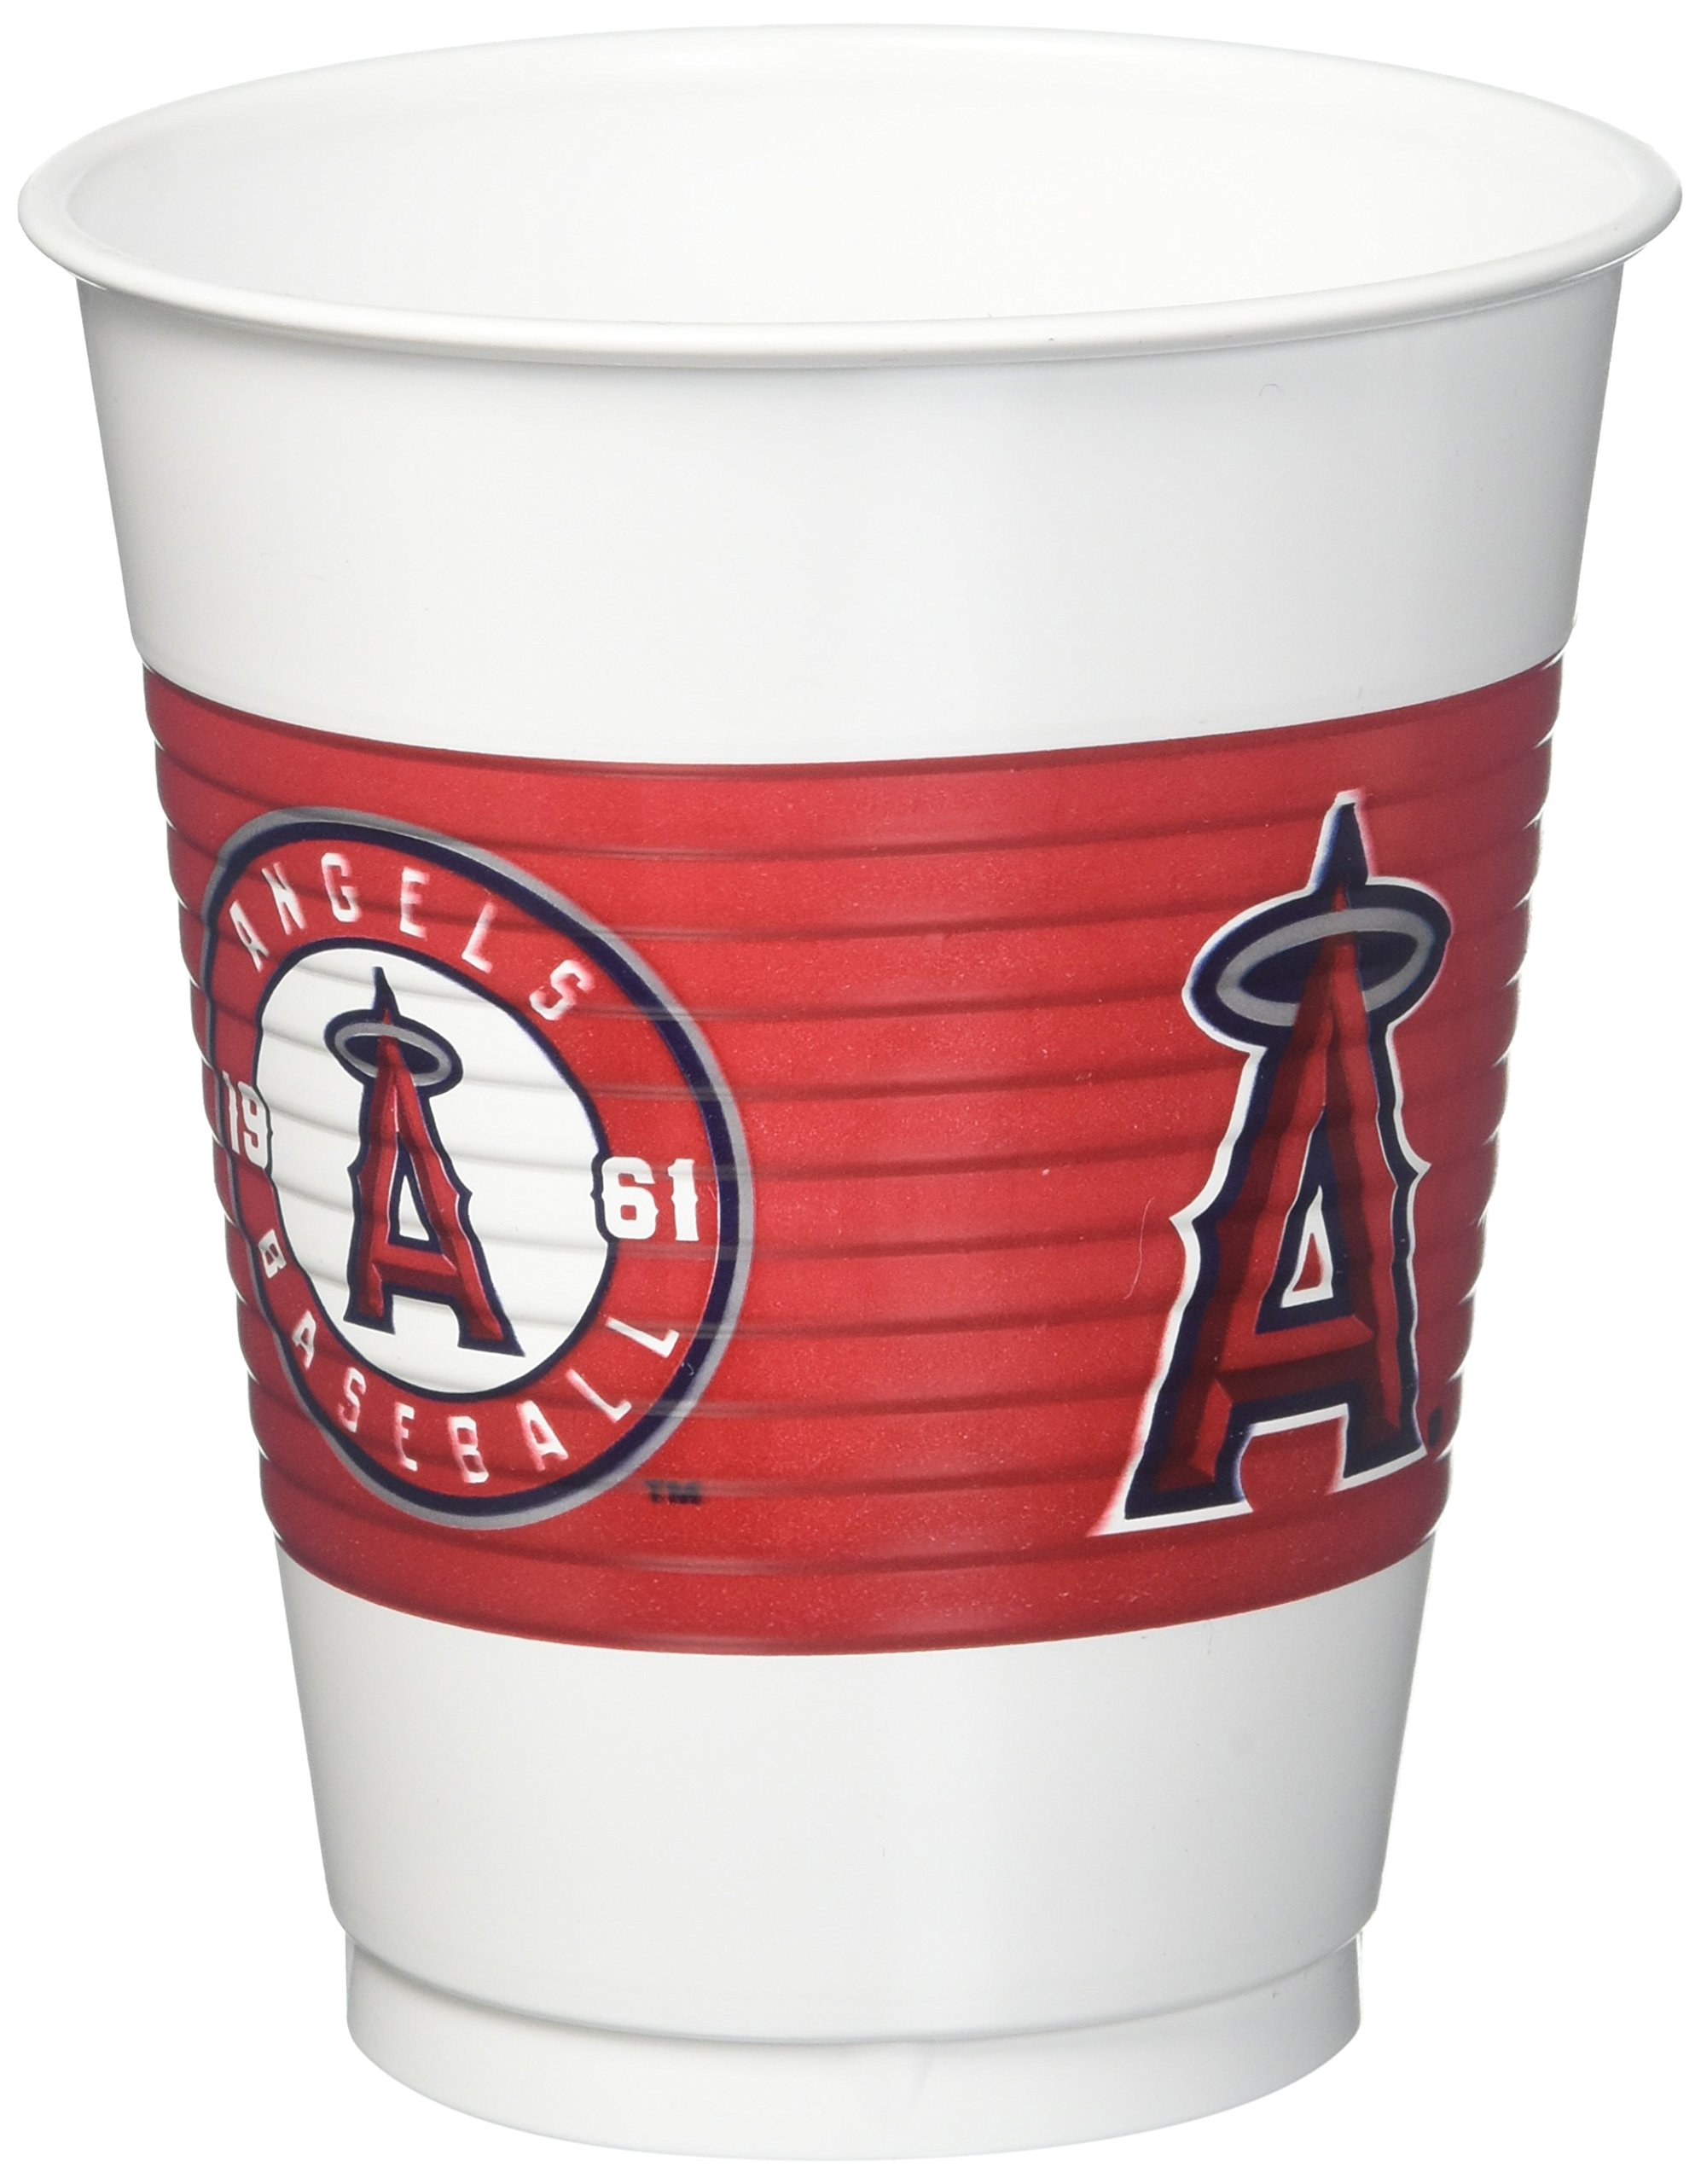 Los Angeles Angels Major League Baseball Collection Plastic Party Cups, 150 Ct.